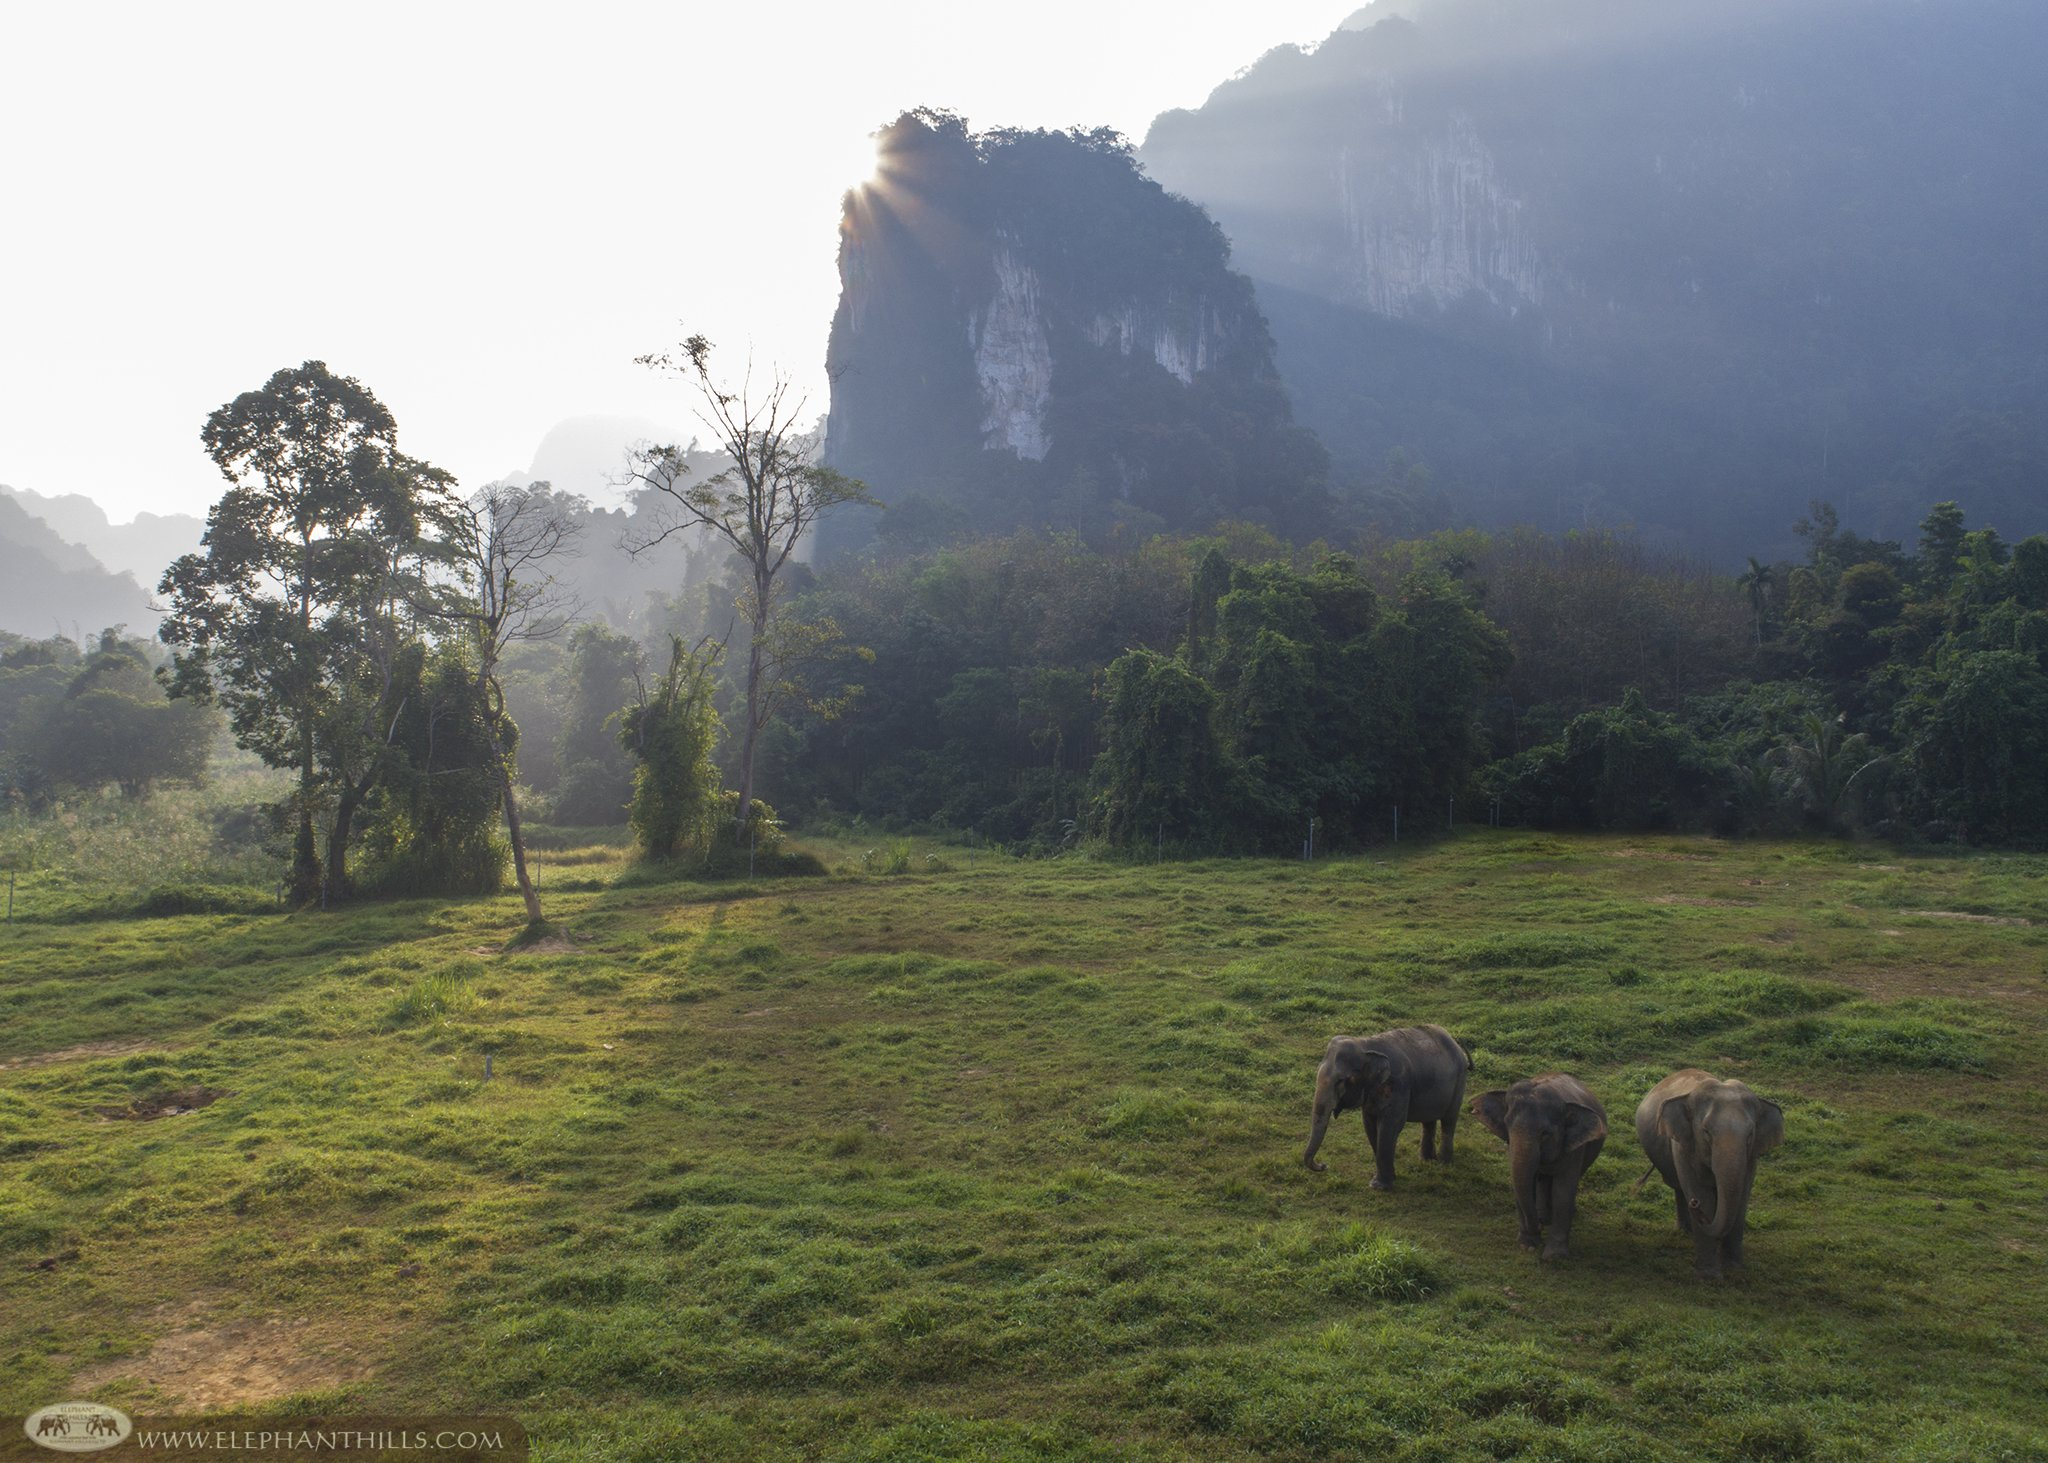 The elephants are living in family group like a human